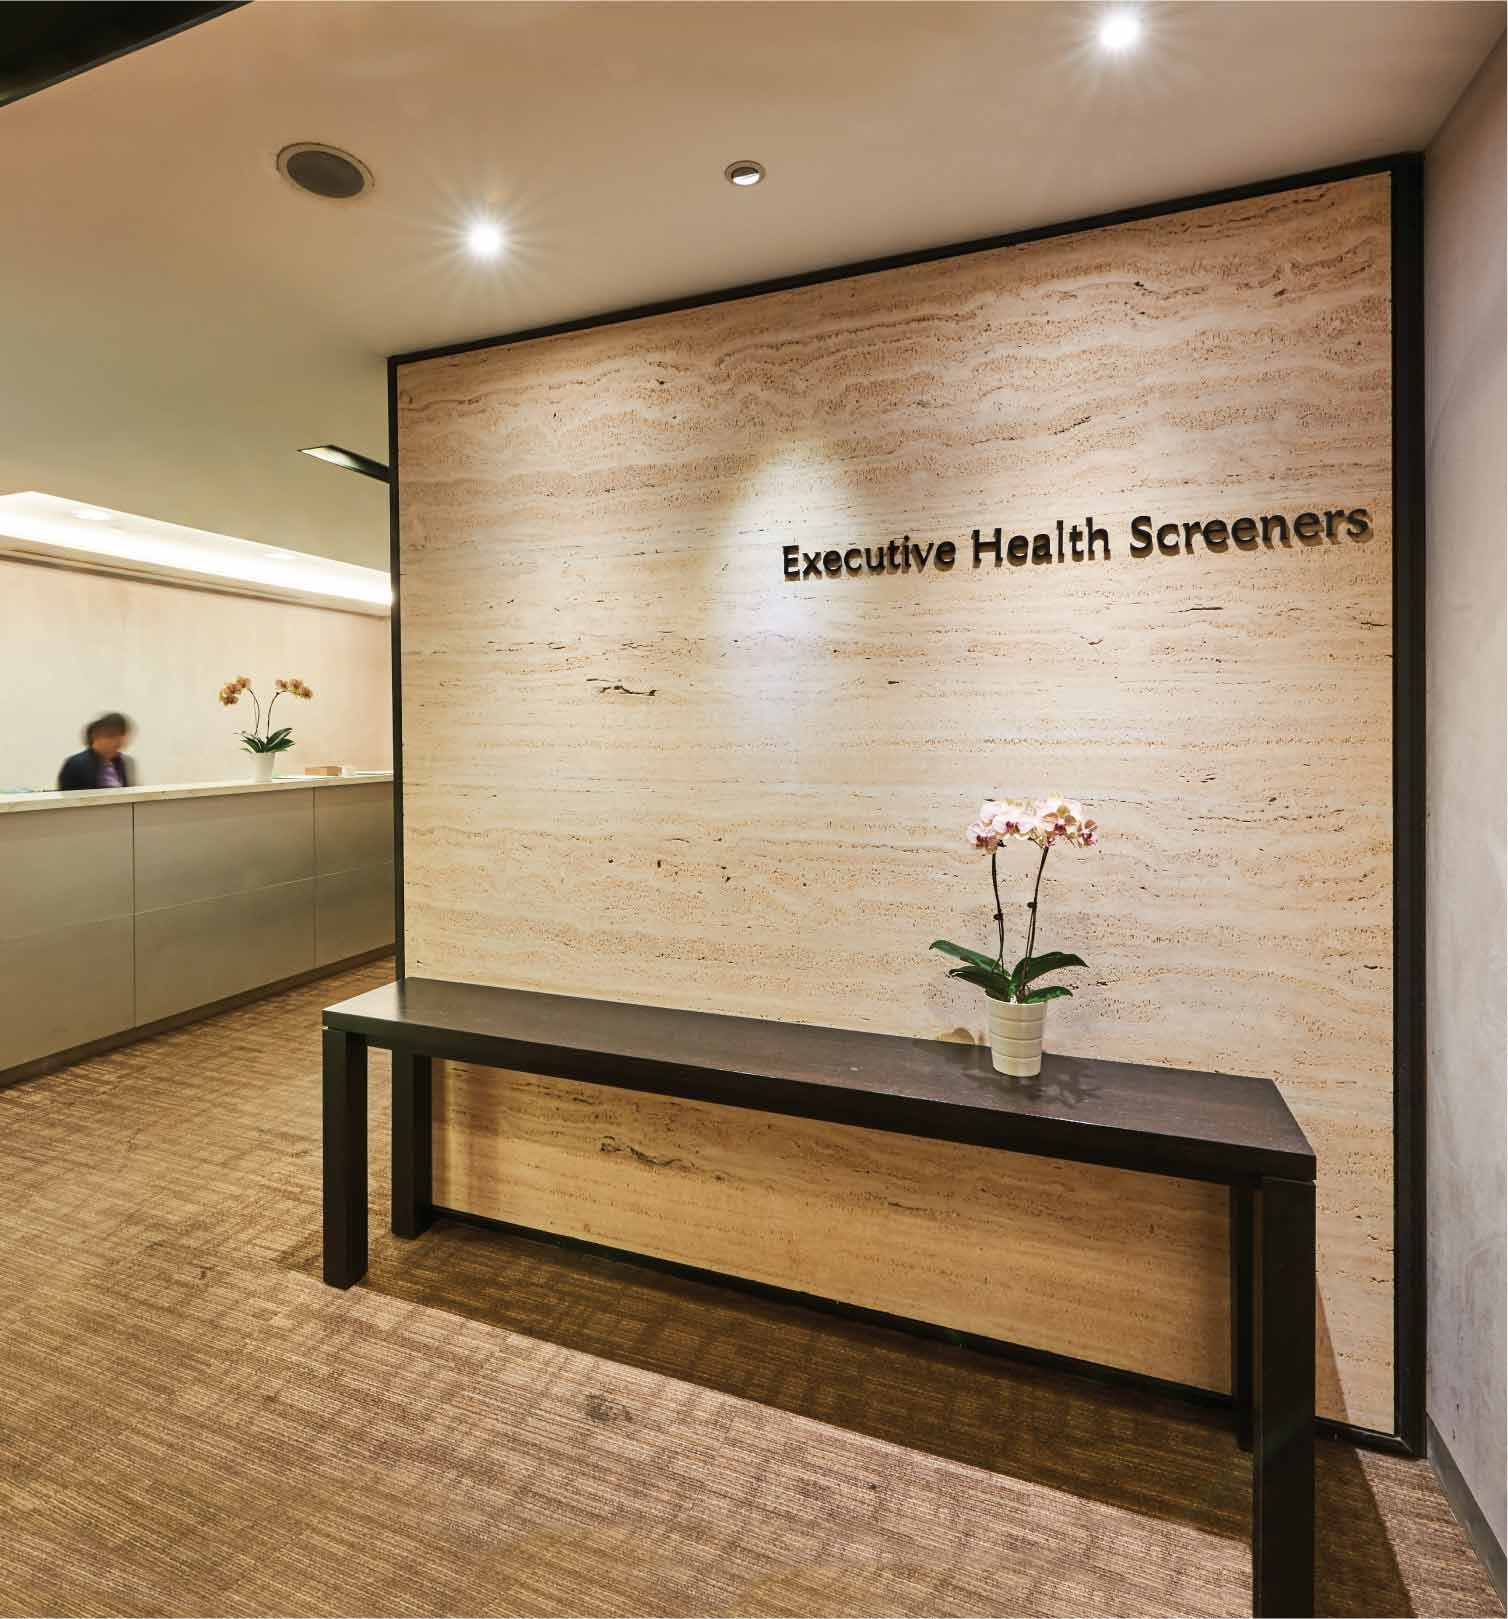 Executive Health Screeners - Arcade